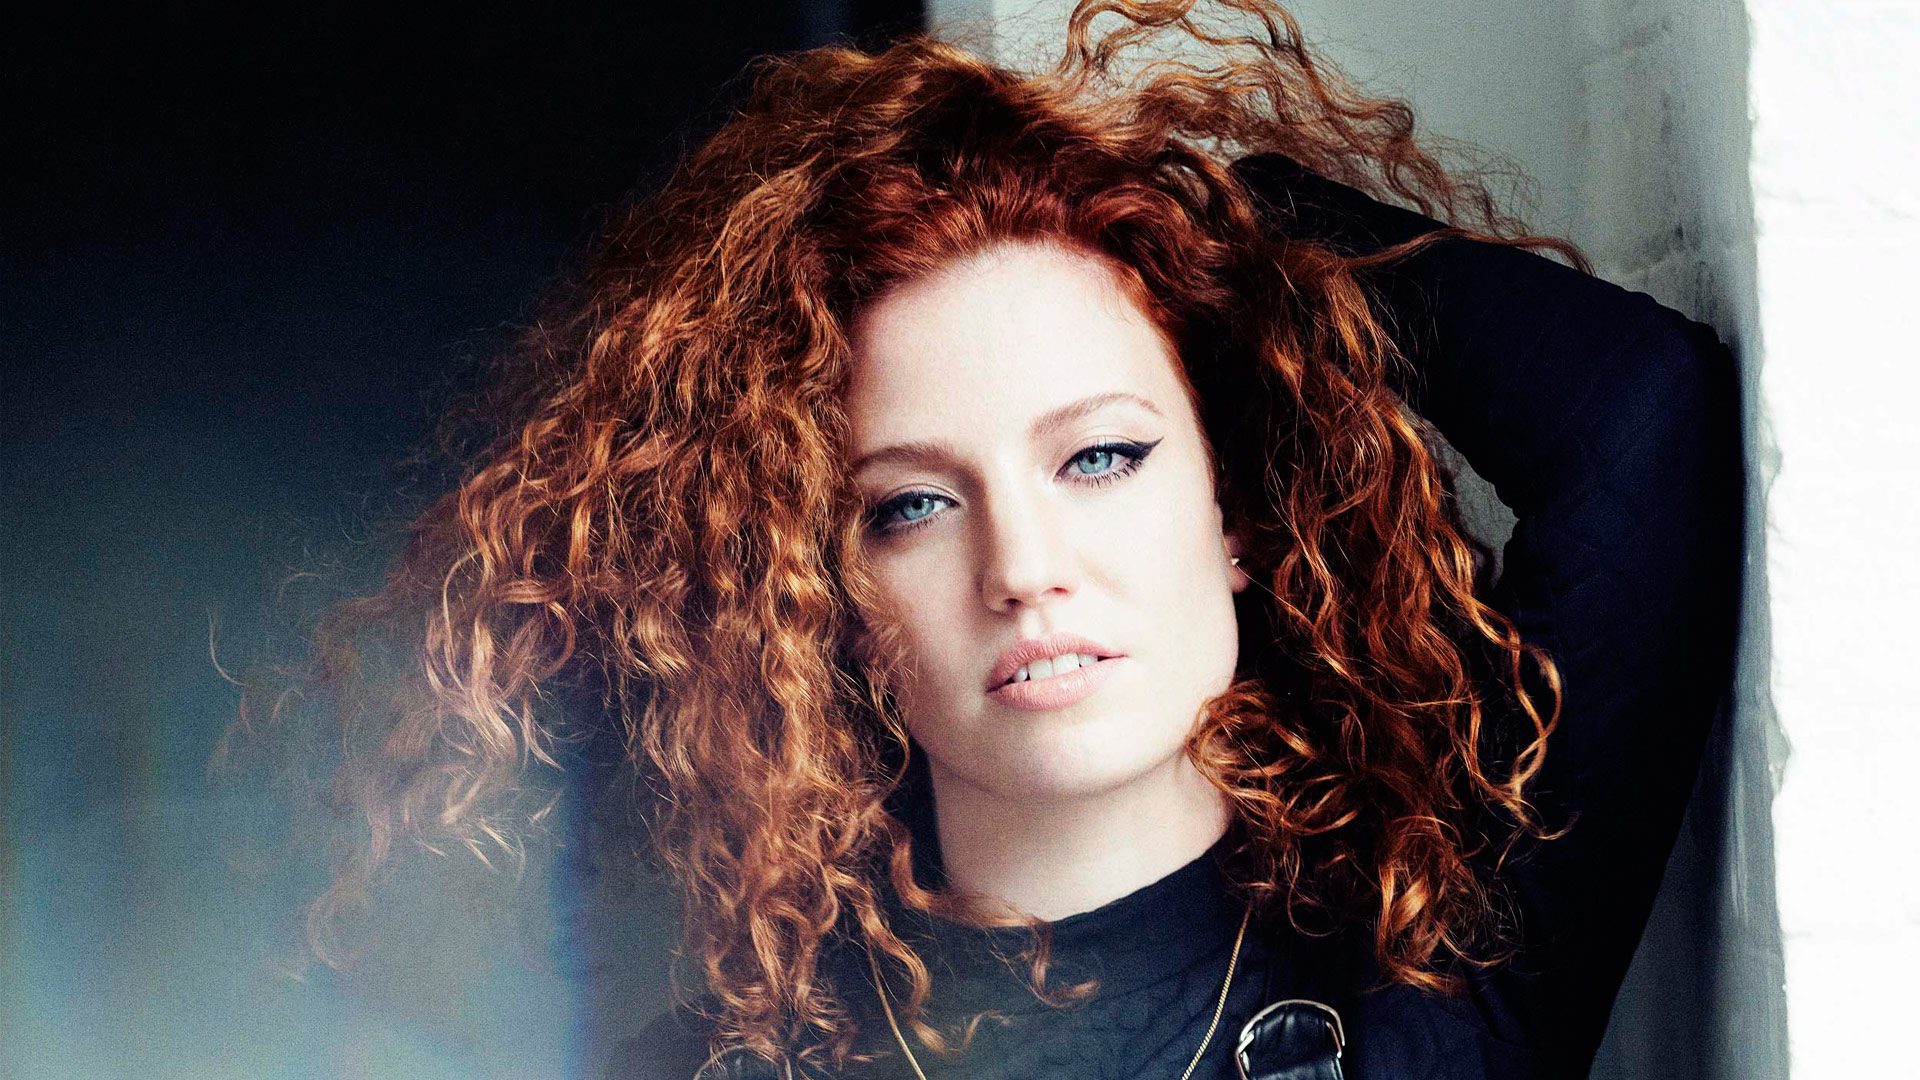 Boobs Images Jess Glynne naked photo 2017